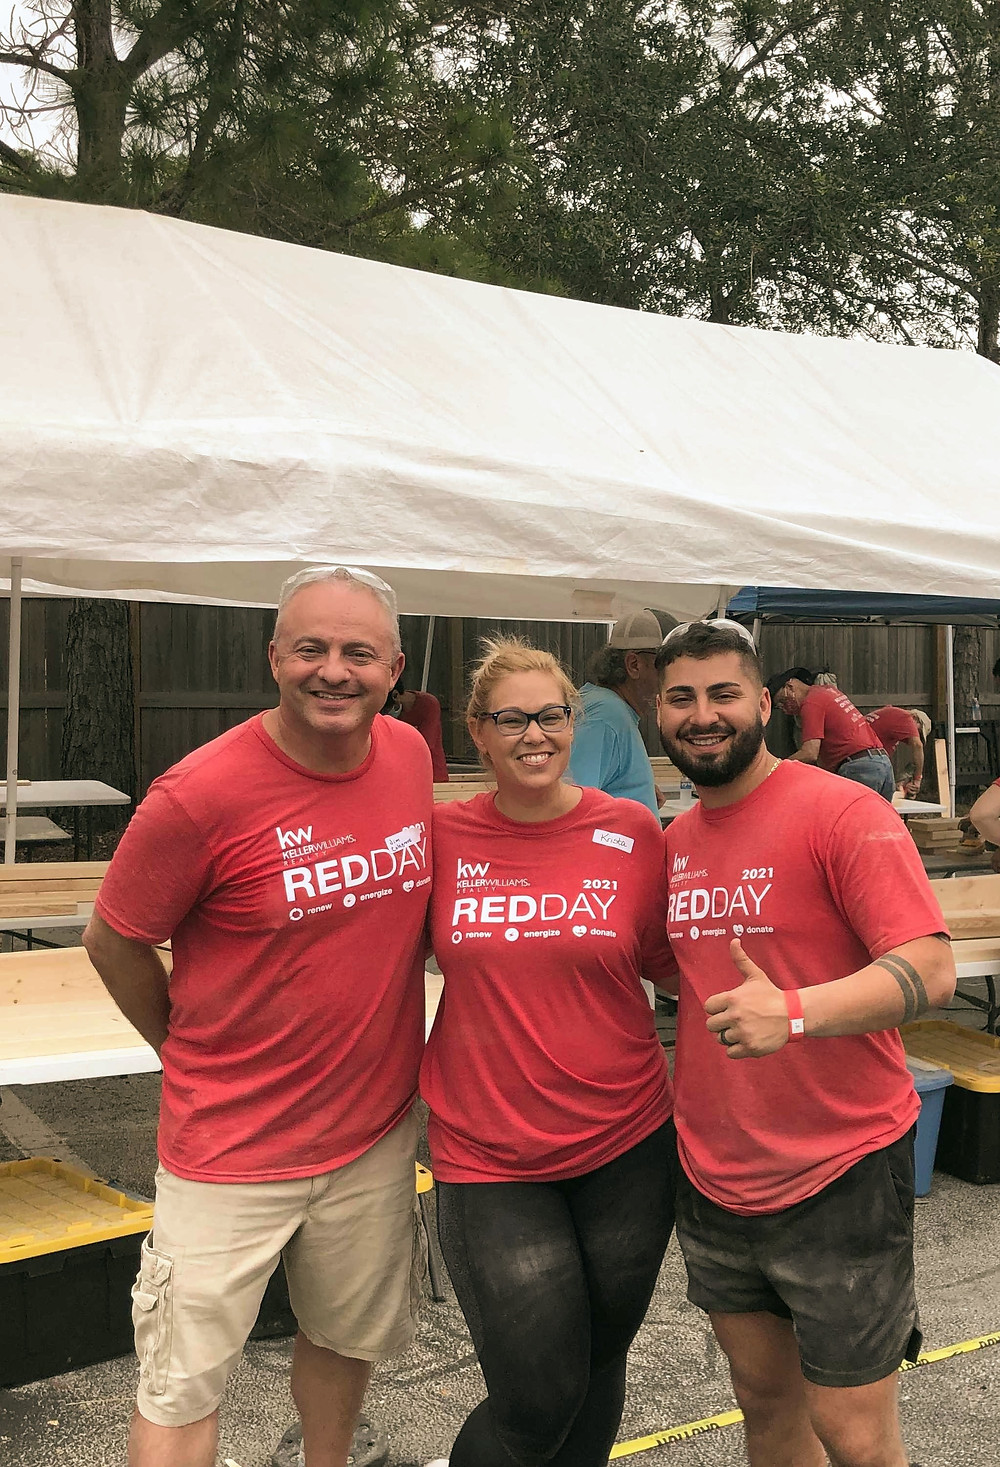 Friends Jim, Krista and Danny helping out at KW RED Day 2021!